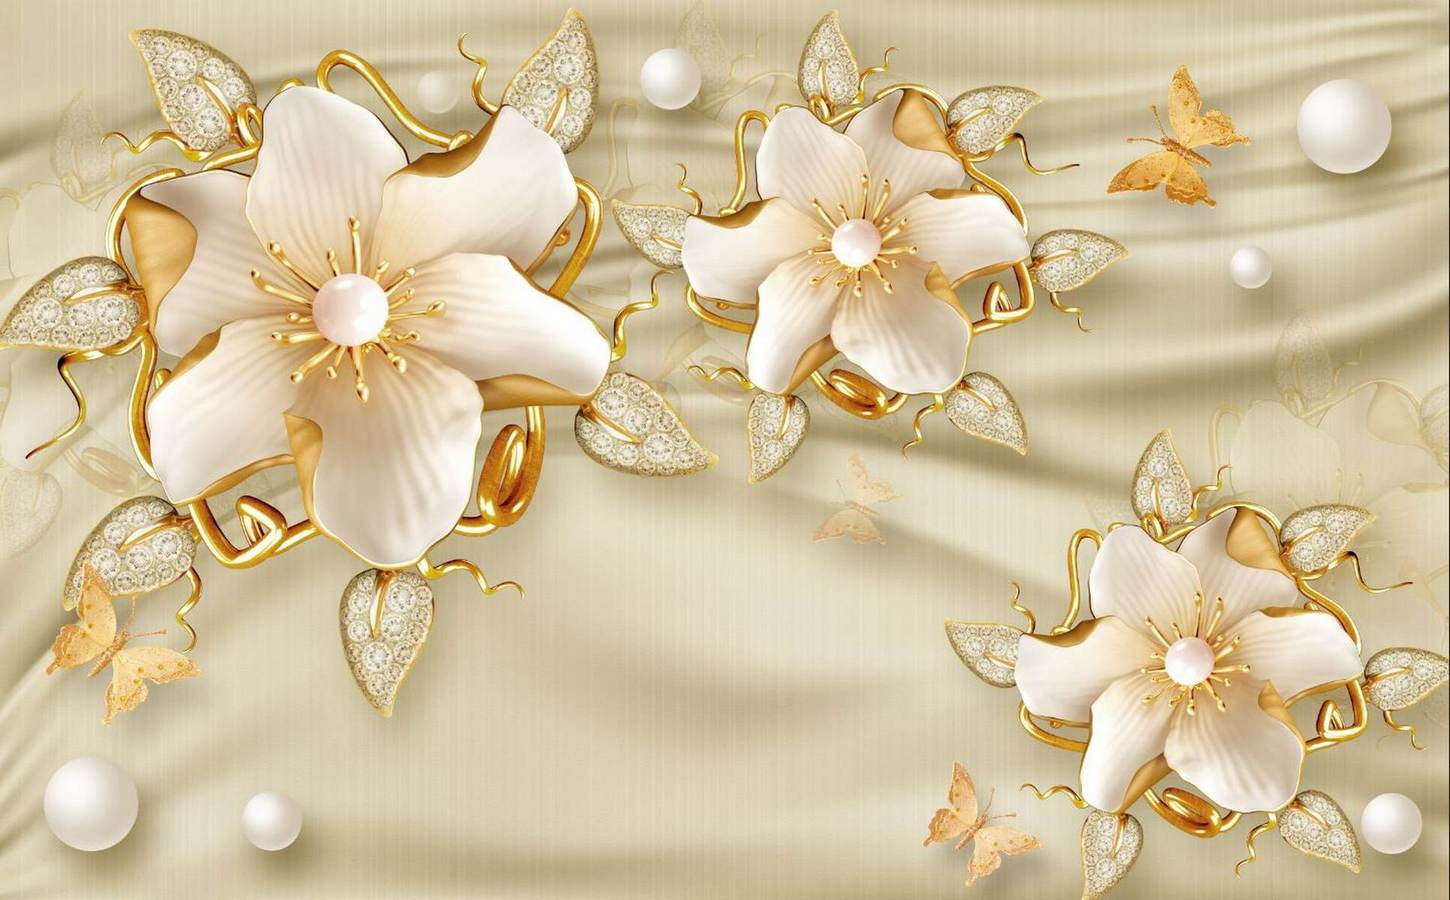 1450x900 Wallpapers Gold flowers on a beige silk background